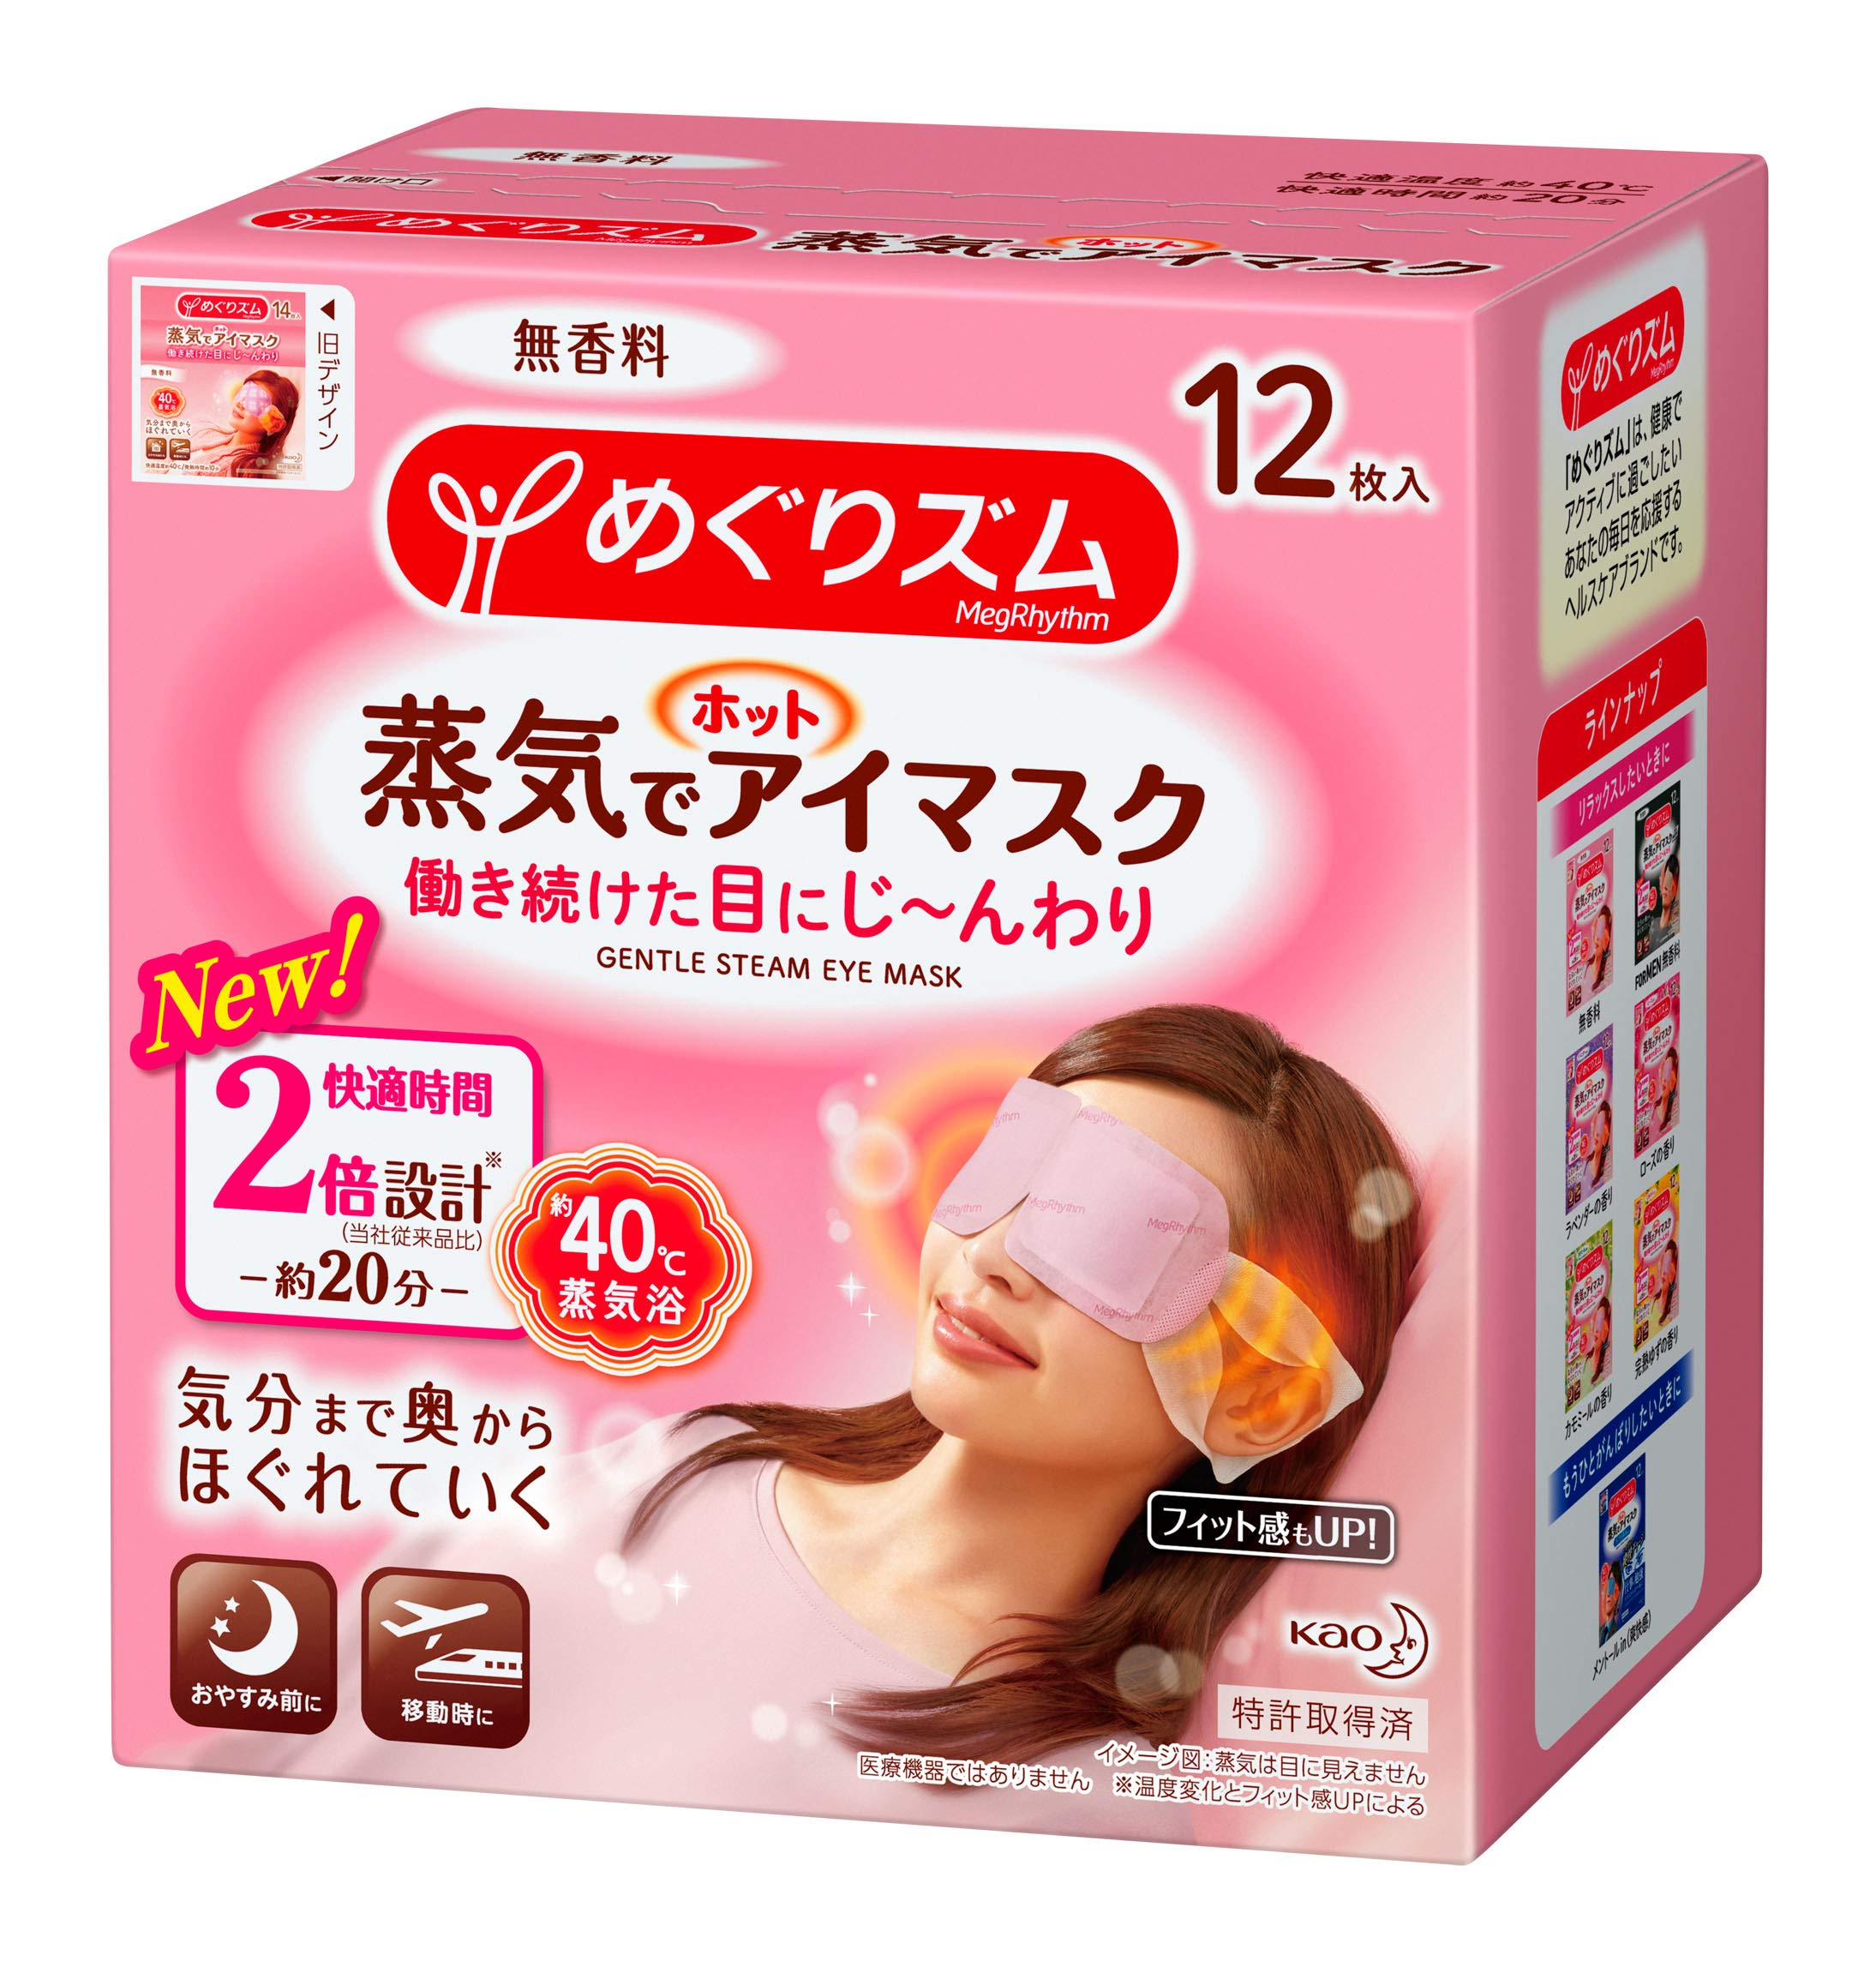 Kao MEGURISM Health Care Steam Warm Eye Mask,Made in Japan,No fragrance 12 Sheets by KAO